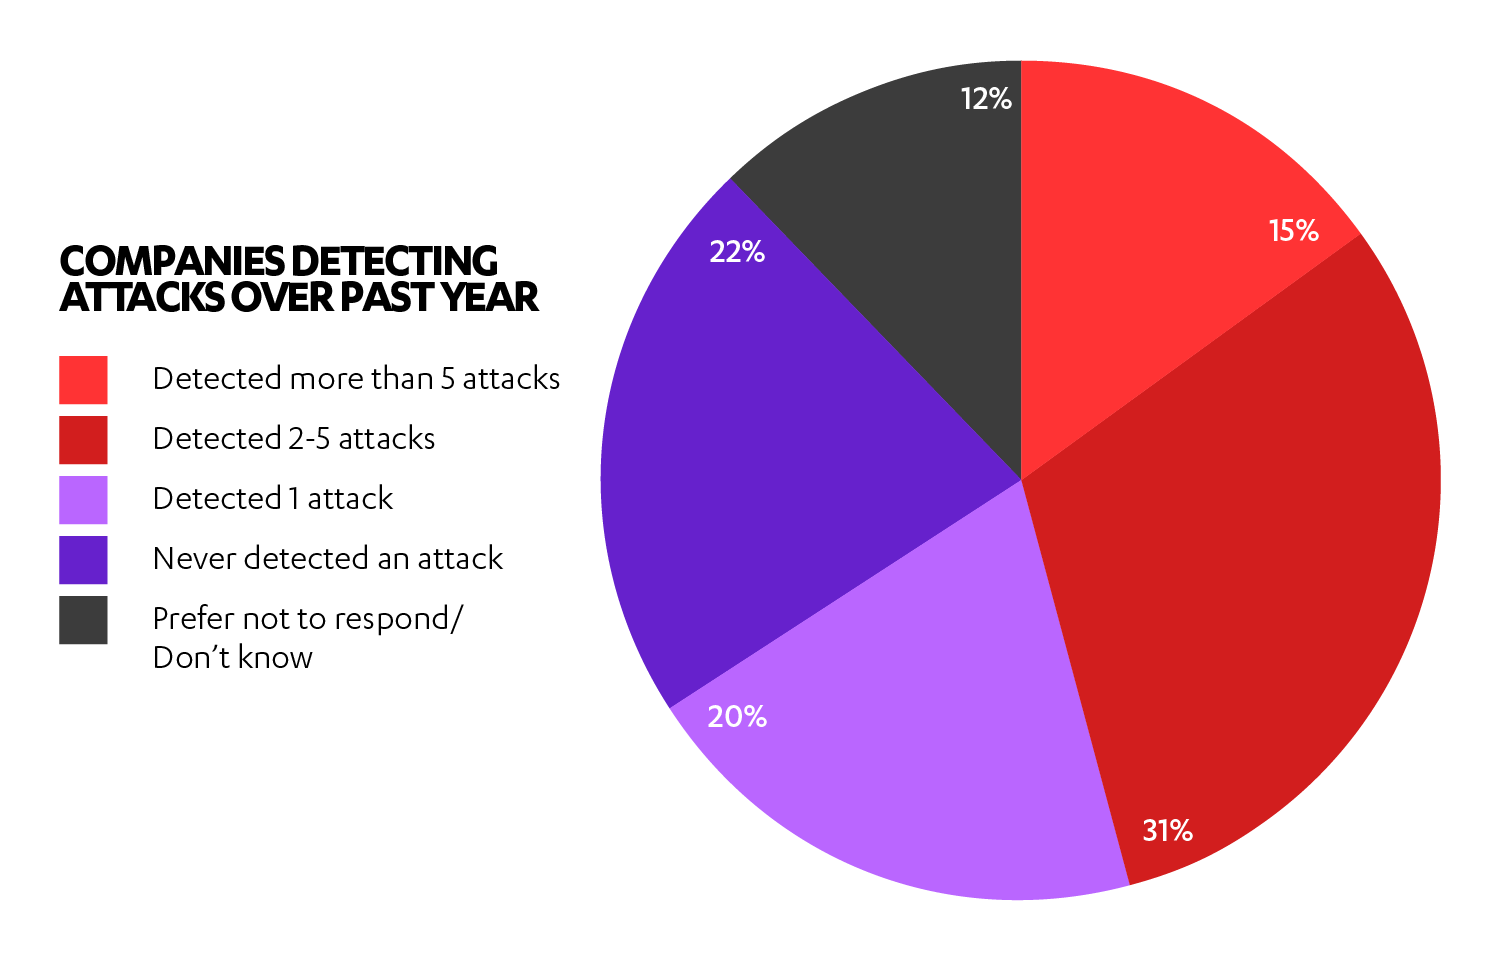 Companies detecting attacks over past year